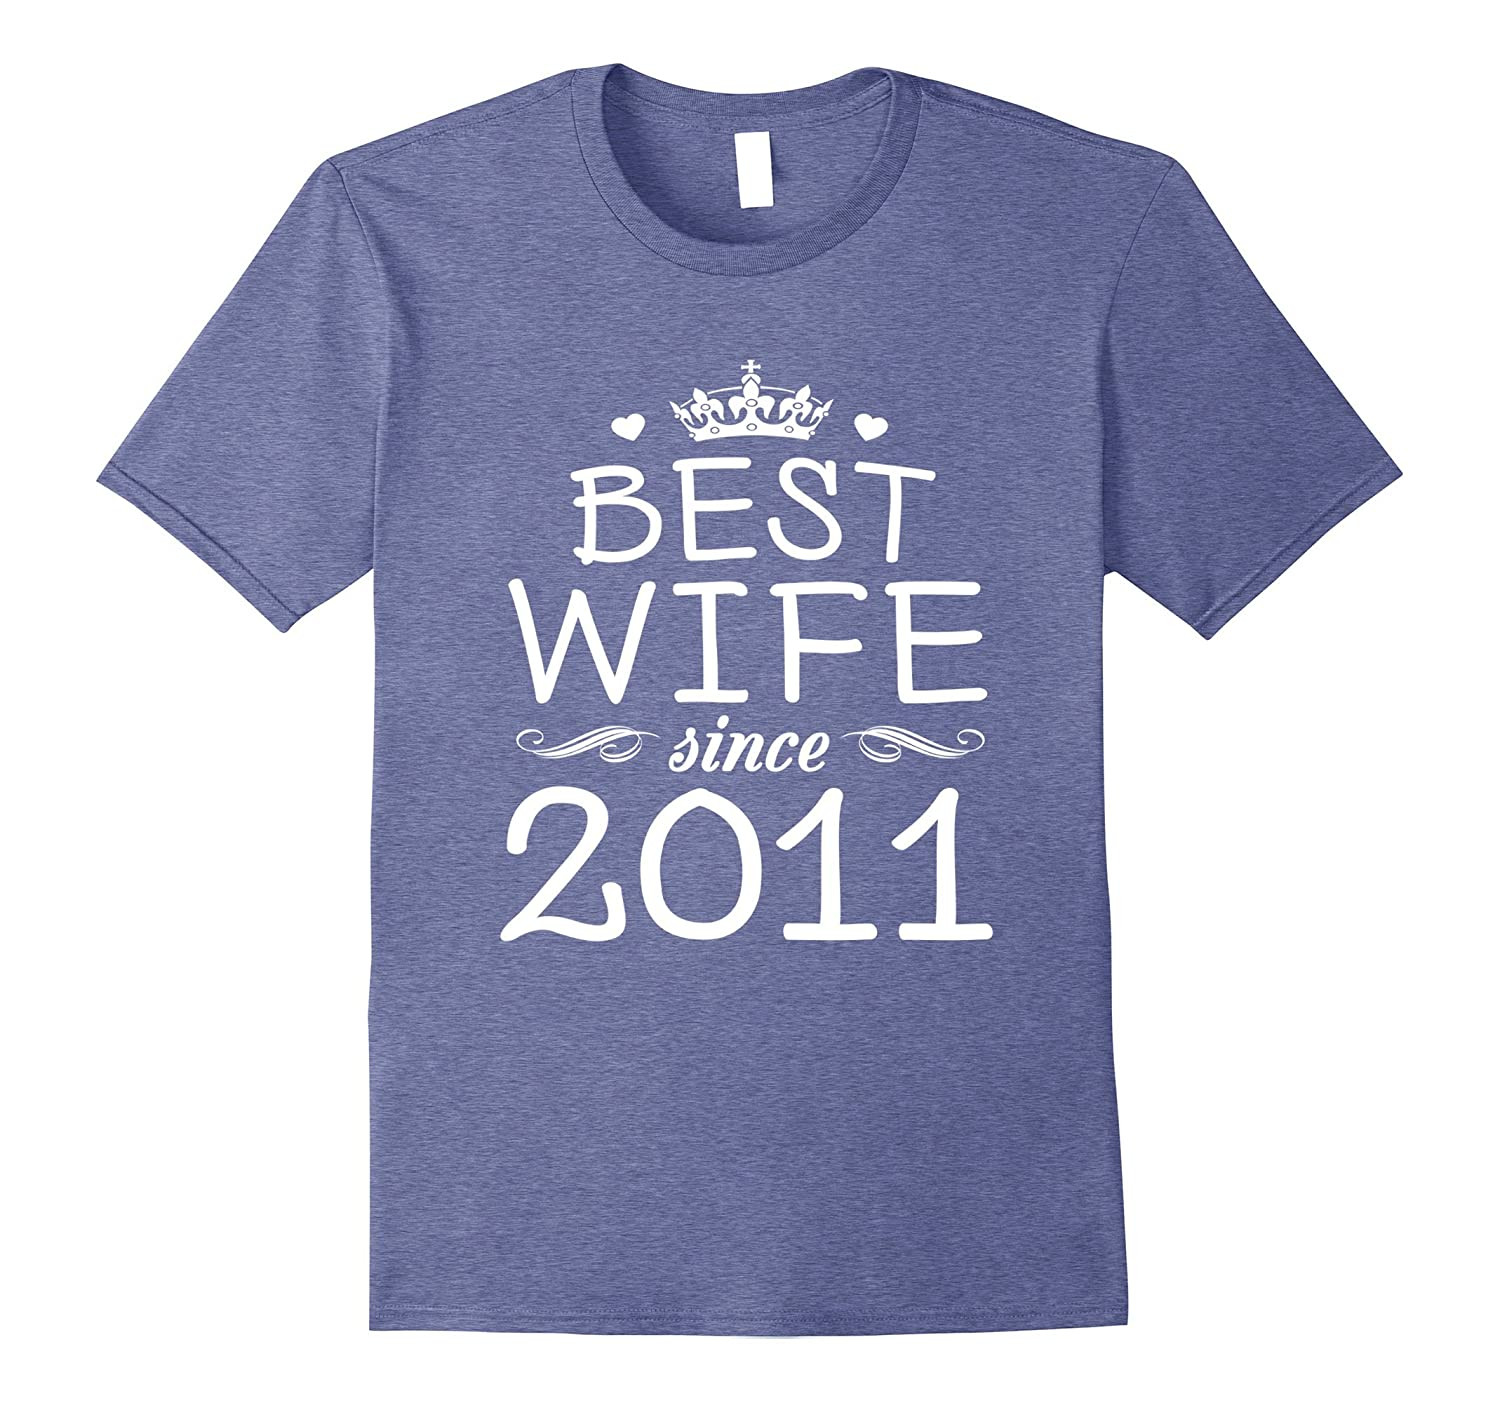 6Th Wedding Anniversary Gift Ideas For Her  6th Wedding Anniversary Gift Ideas For Her Wife Since 2011